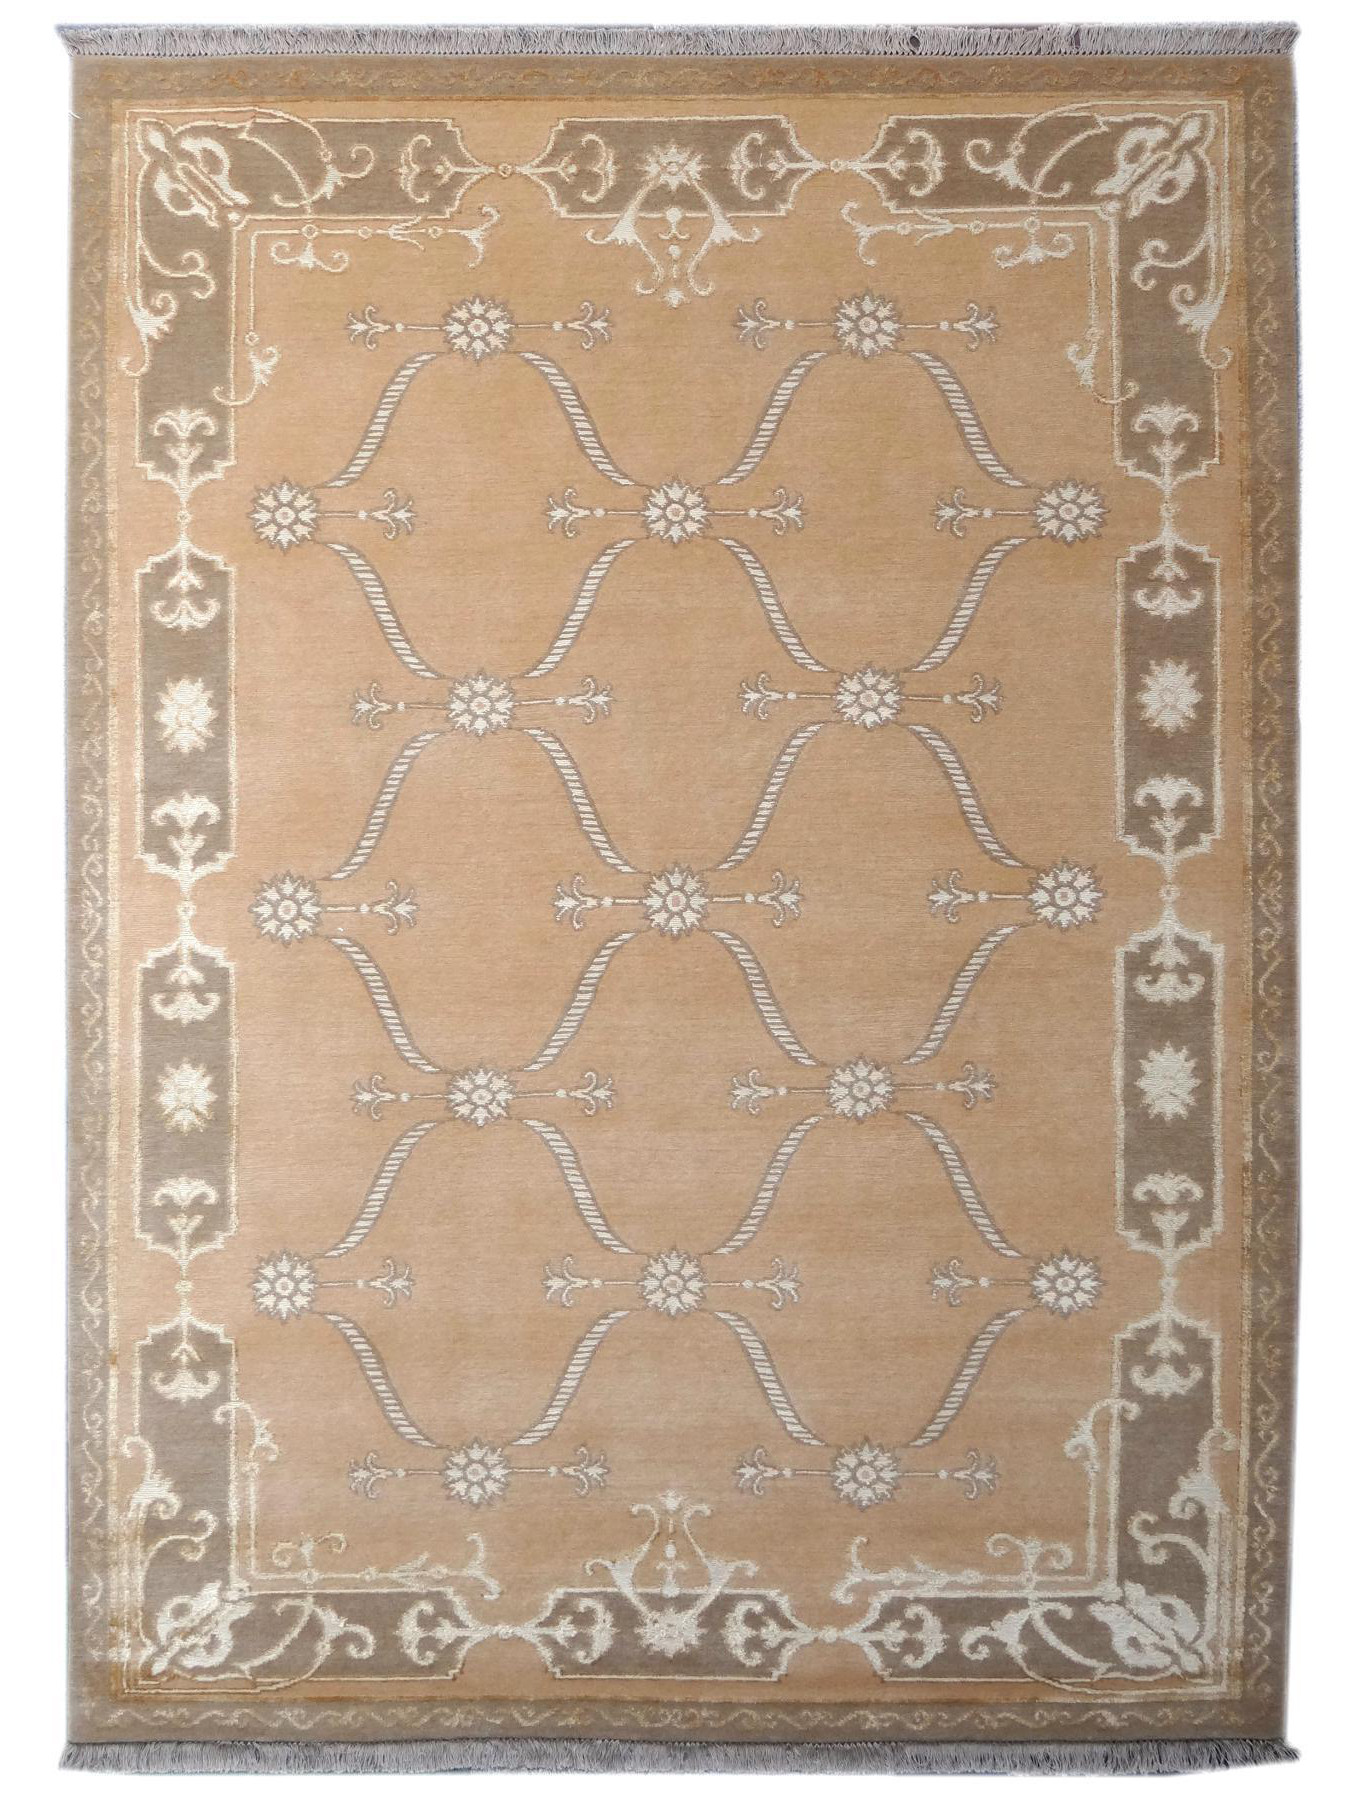 Luxury carpets - CARTOUCHES - S2522